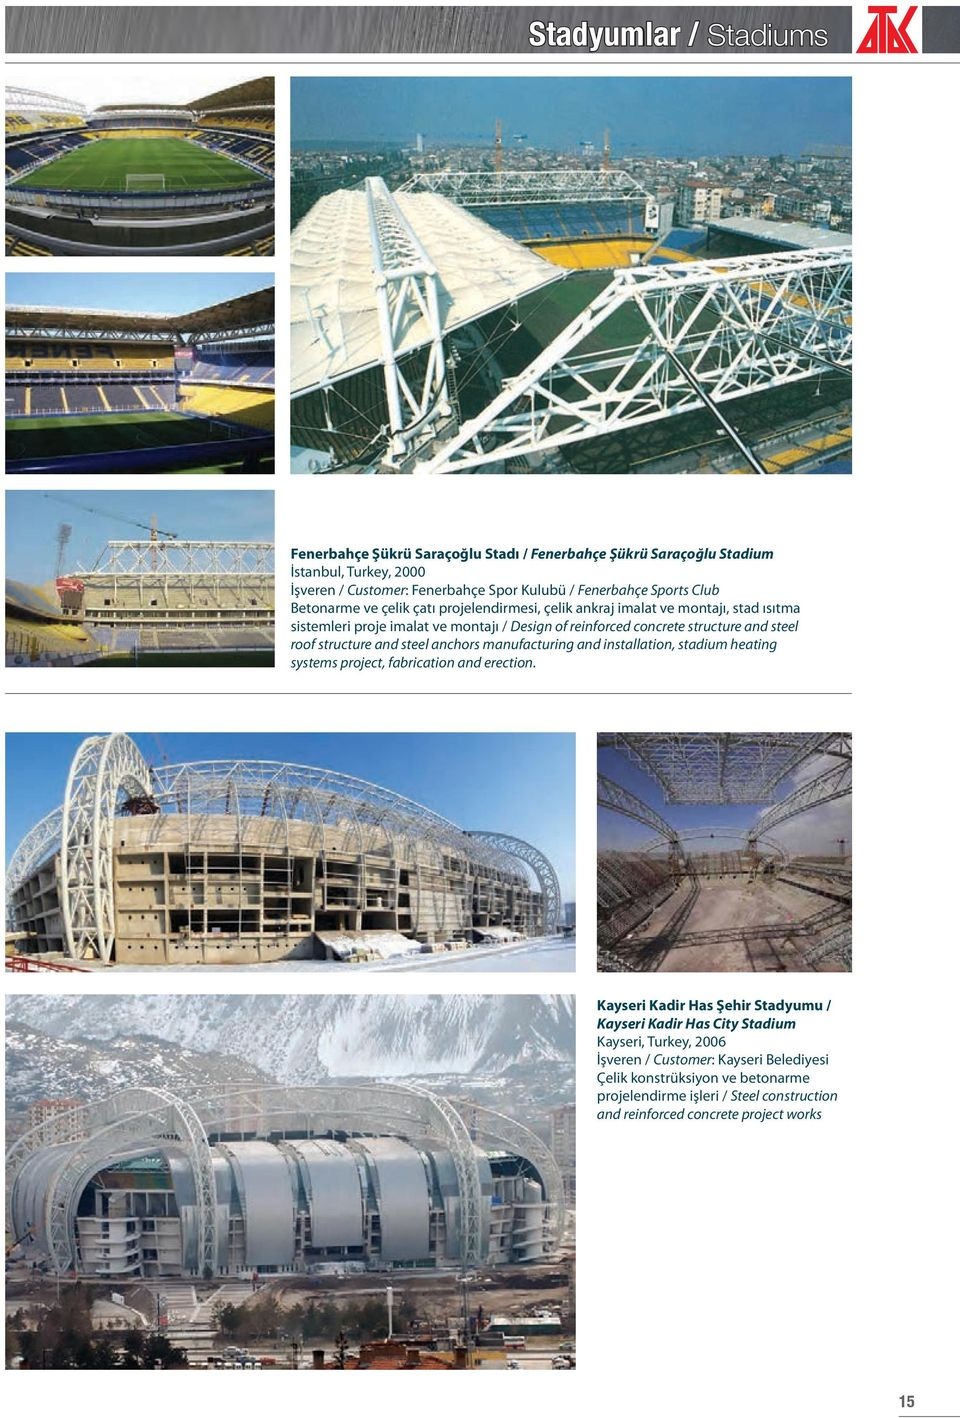 roof structure and steel anchors manufacturing and installation, stadium heating systems project, fabrication and erection.